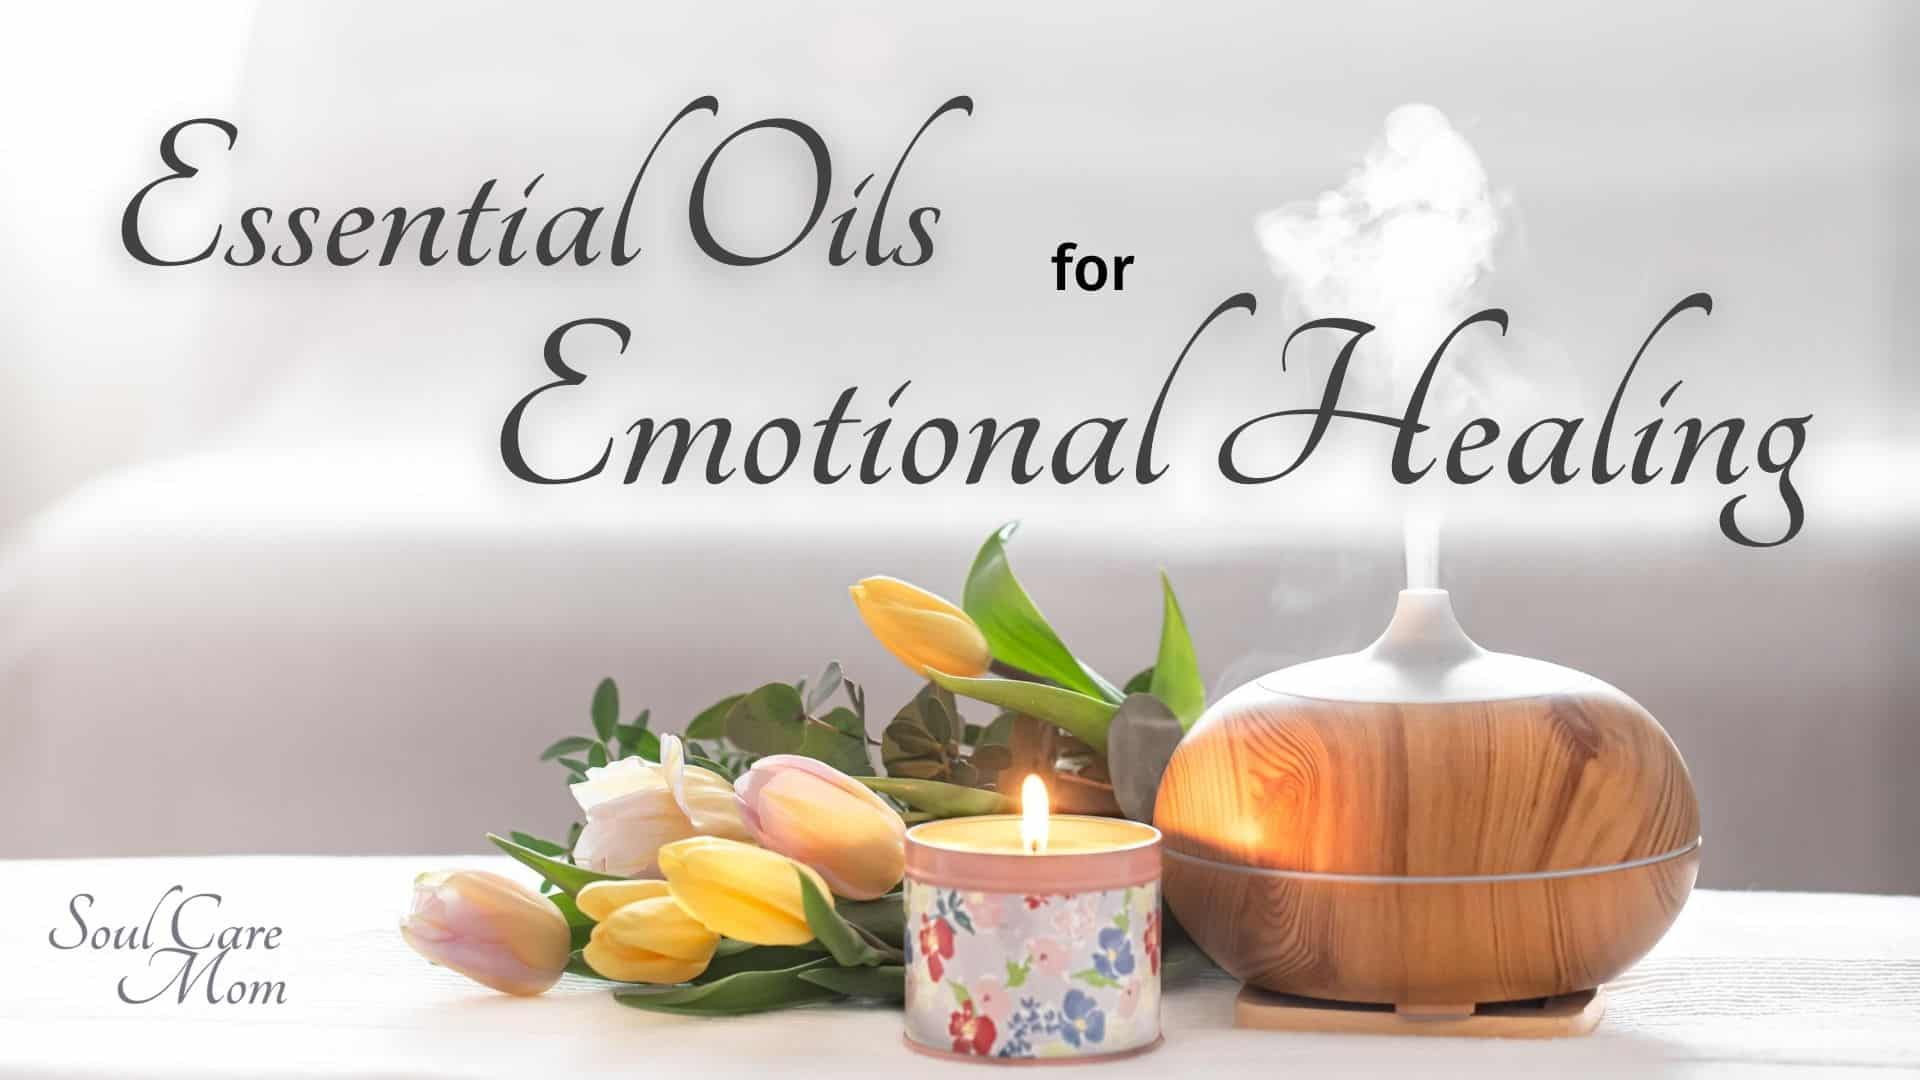 Essential Oils for Emotional Healing Course - Teachable 1920x1080 - Soul Care Mom